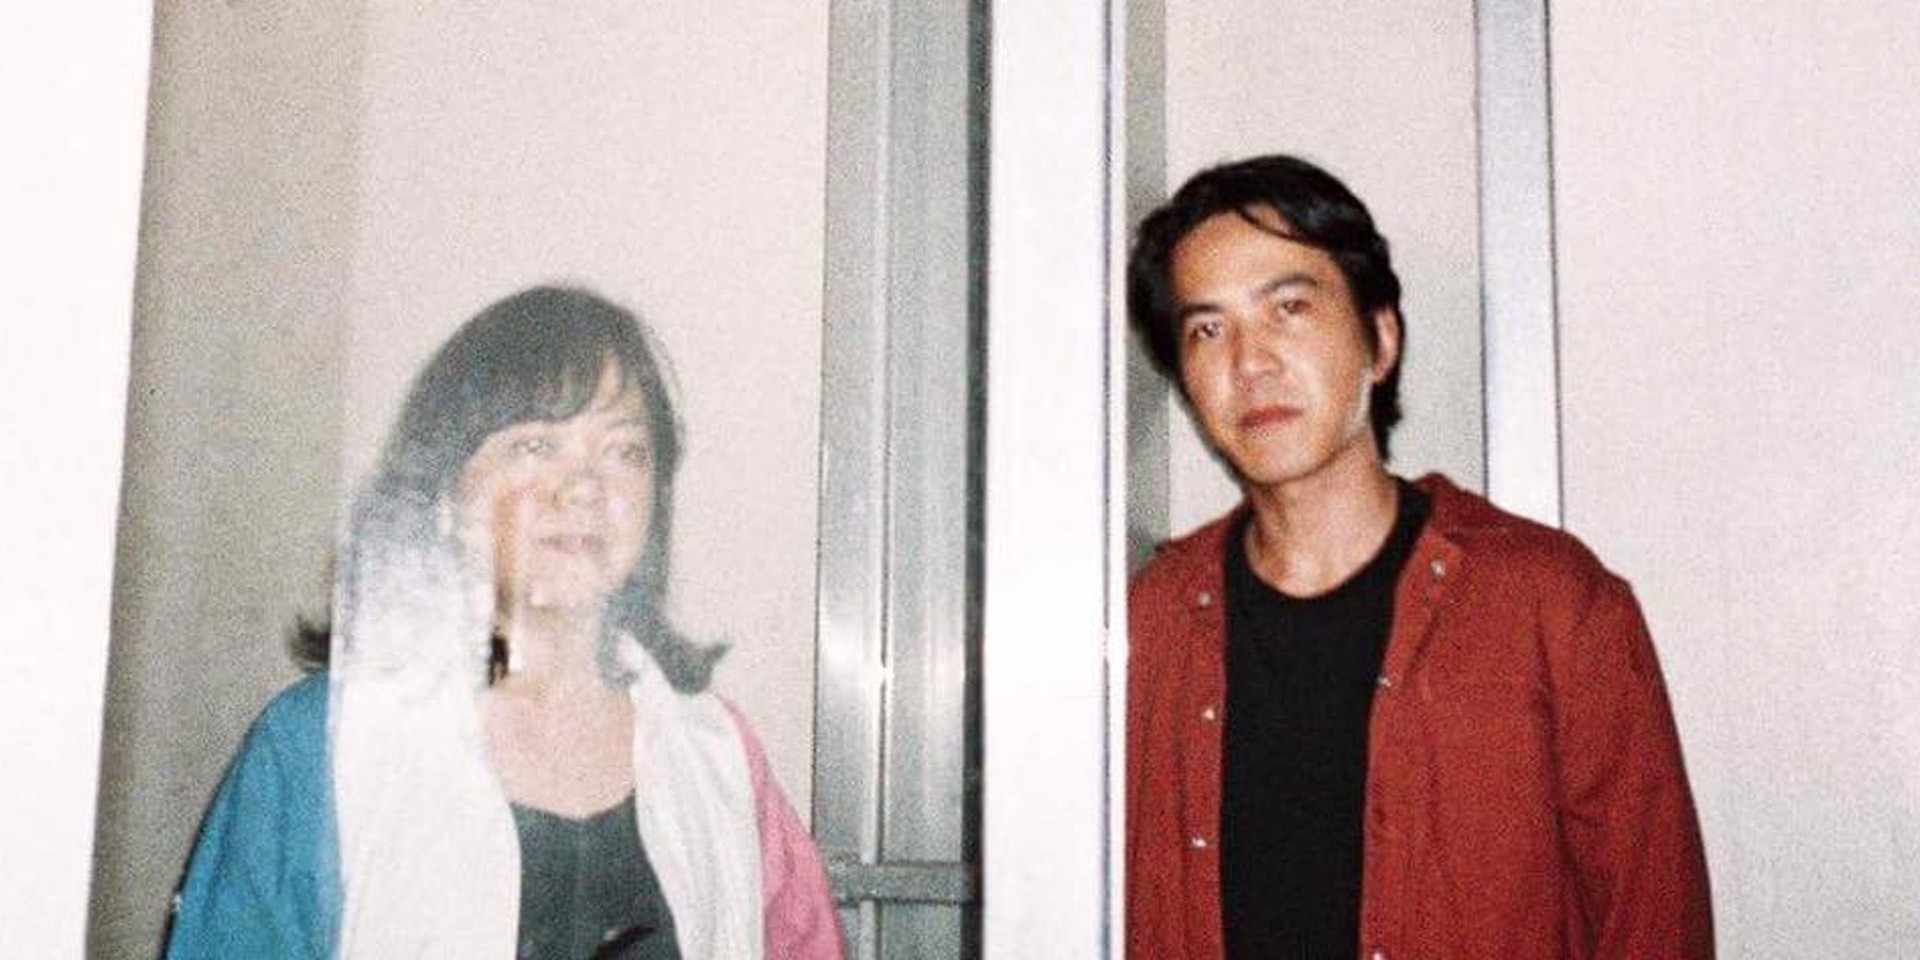 Outerhope unveil artistic 'Airways' visual collage – watch